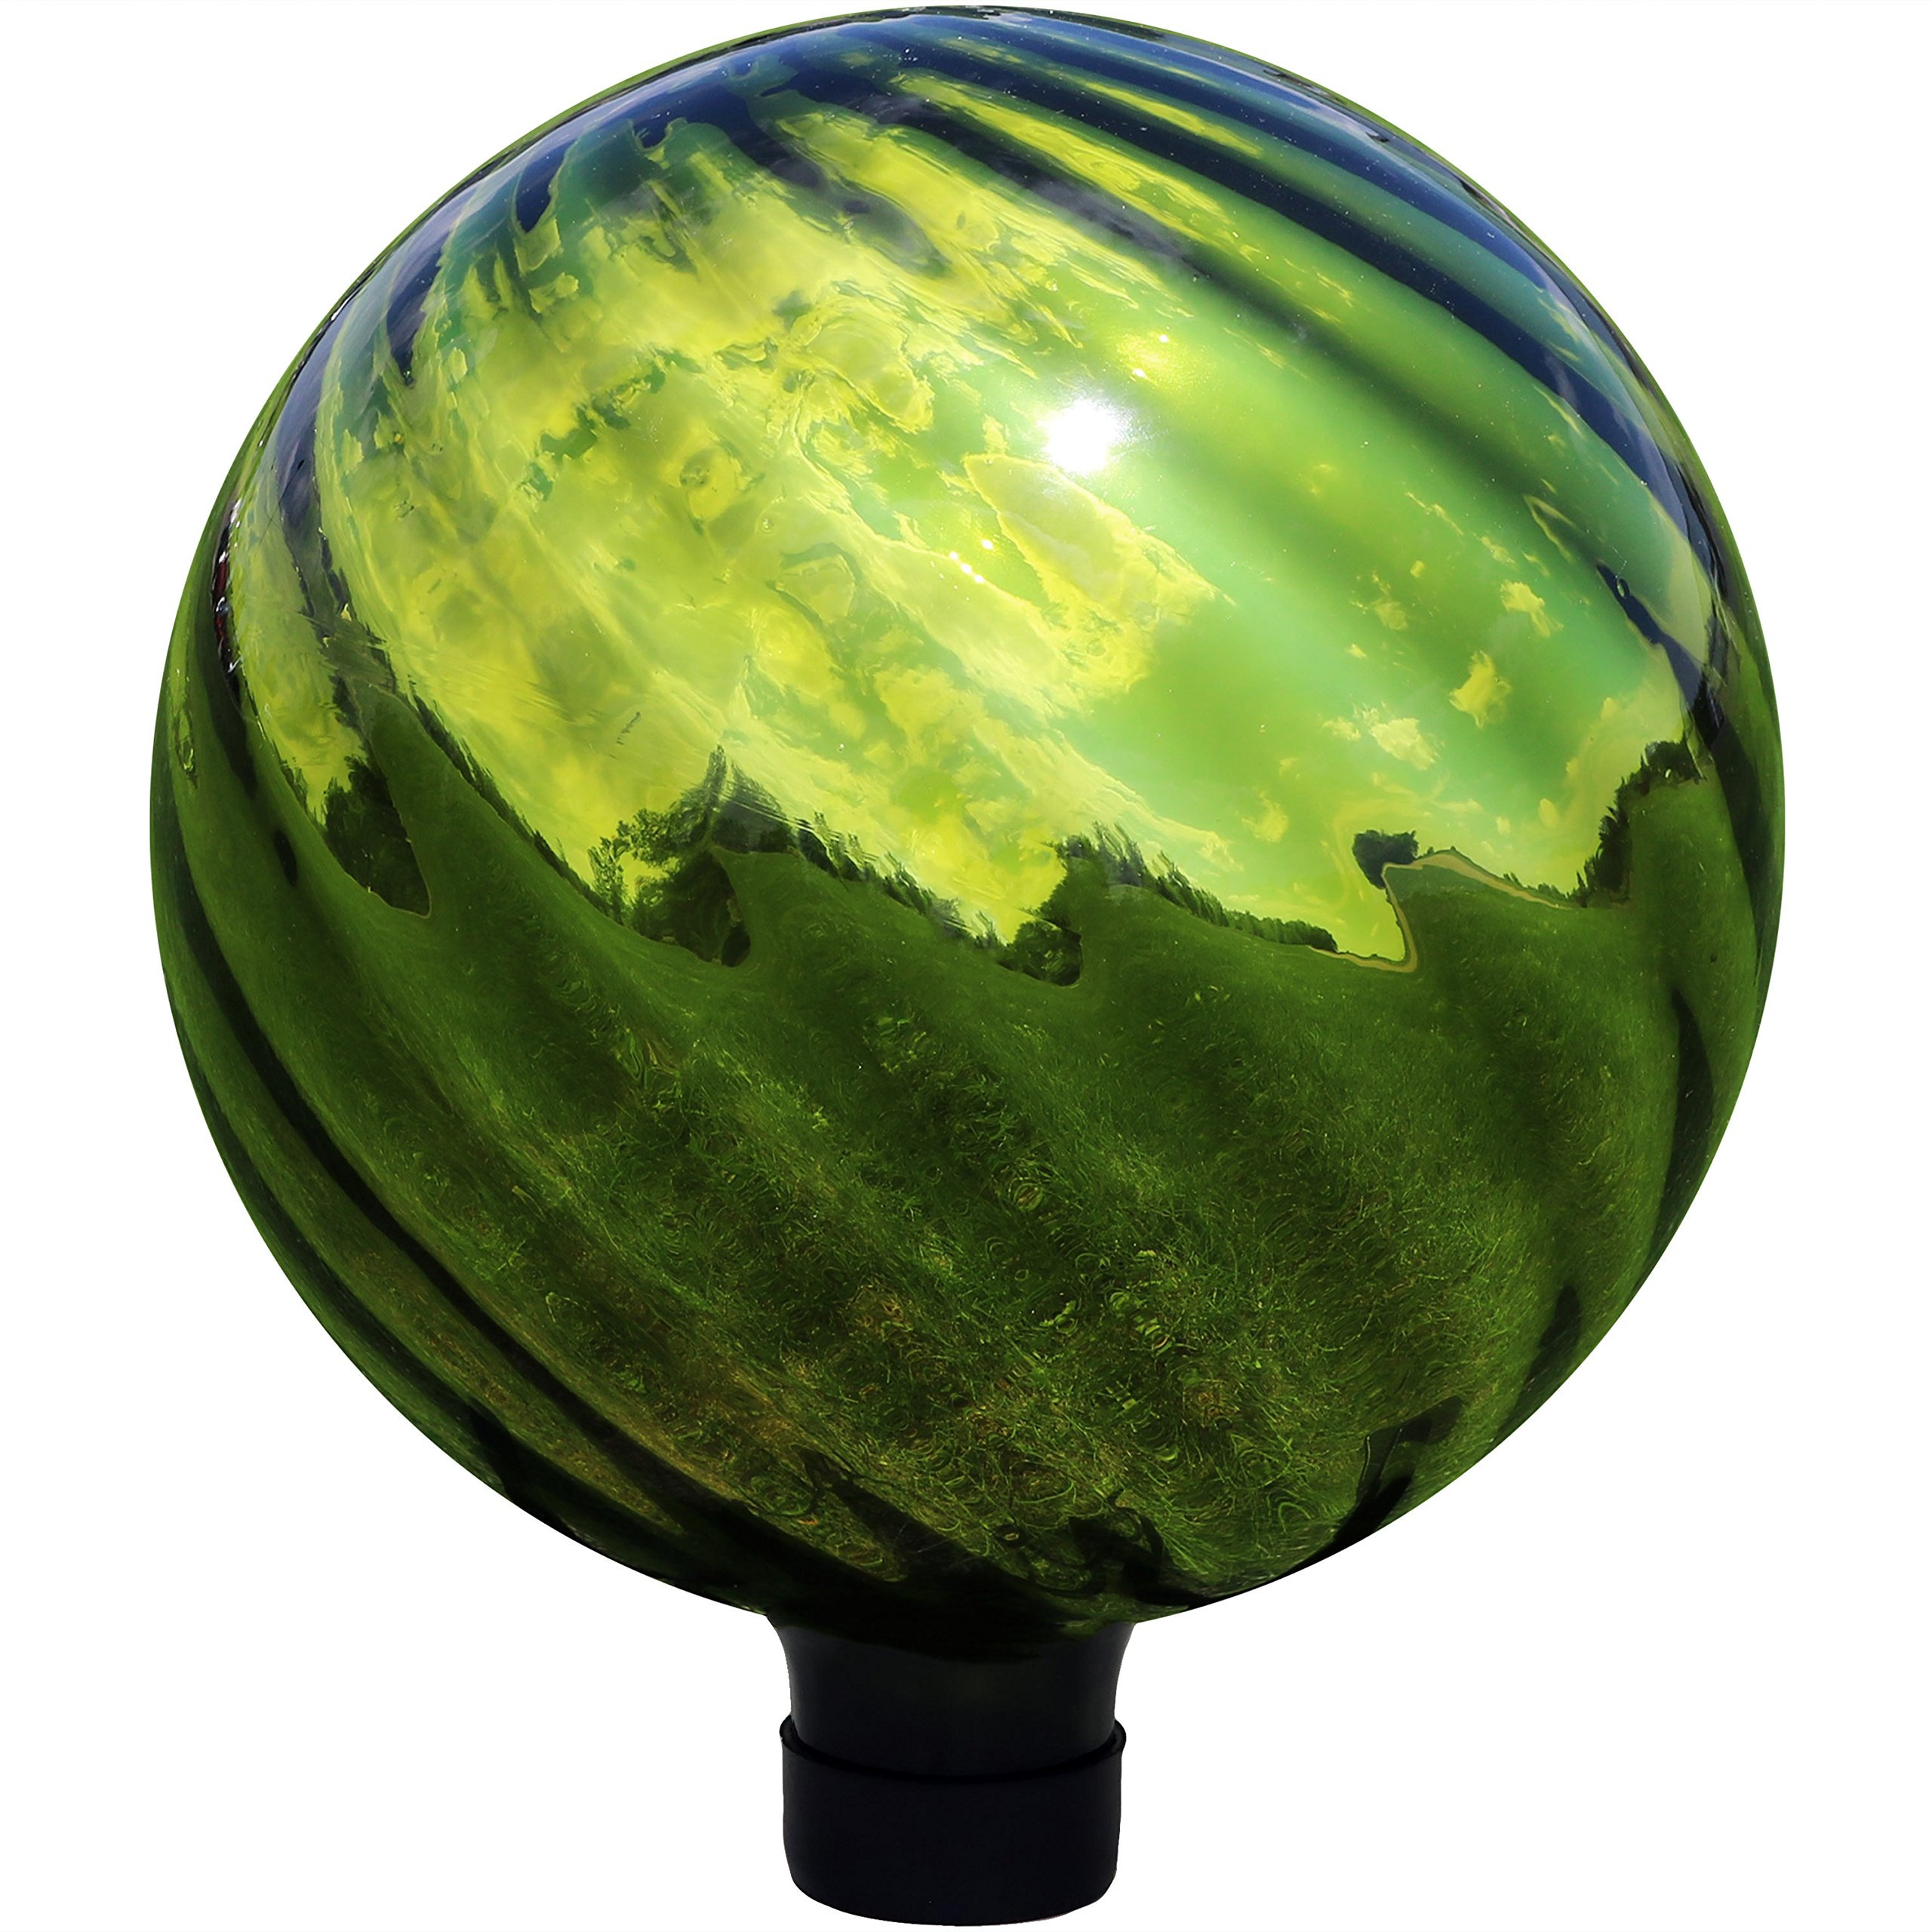 Sunnydaze Green Rippled Gazing Globe Glass Garden Ball, Outdoor Lawn and Yard Ornament, Reflective Mirrored Surface, 10-Inch